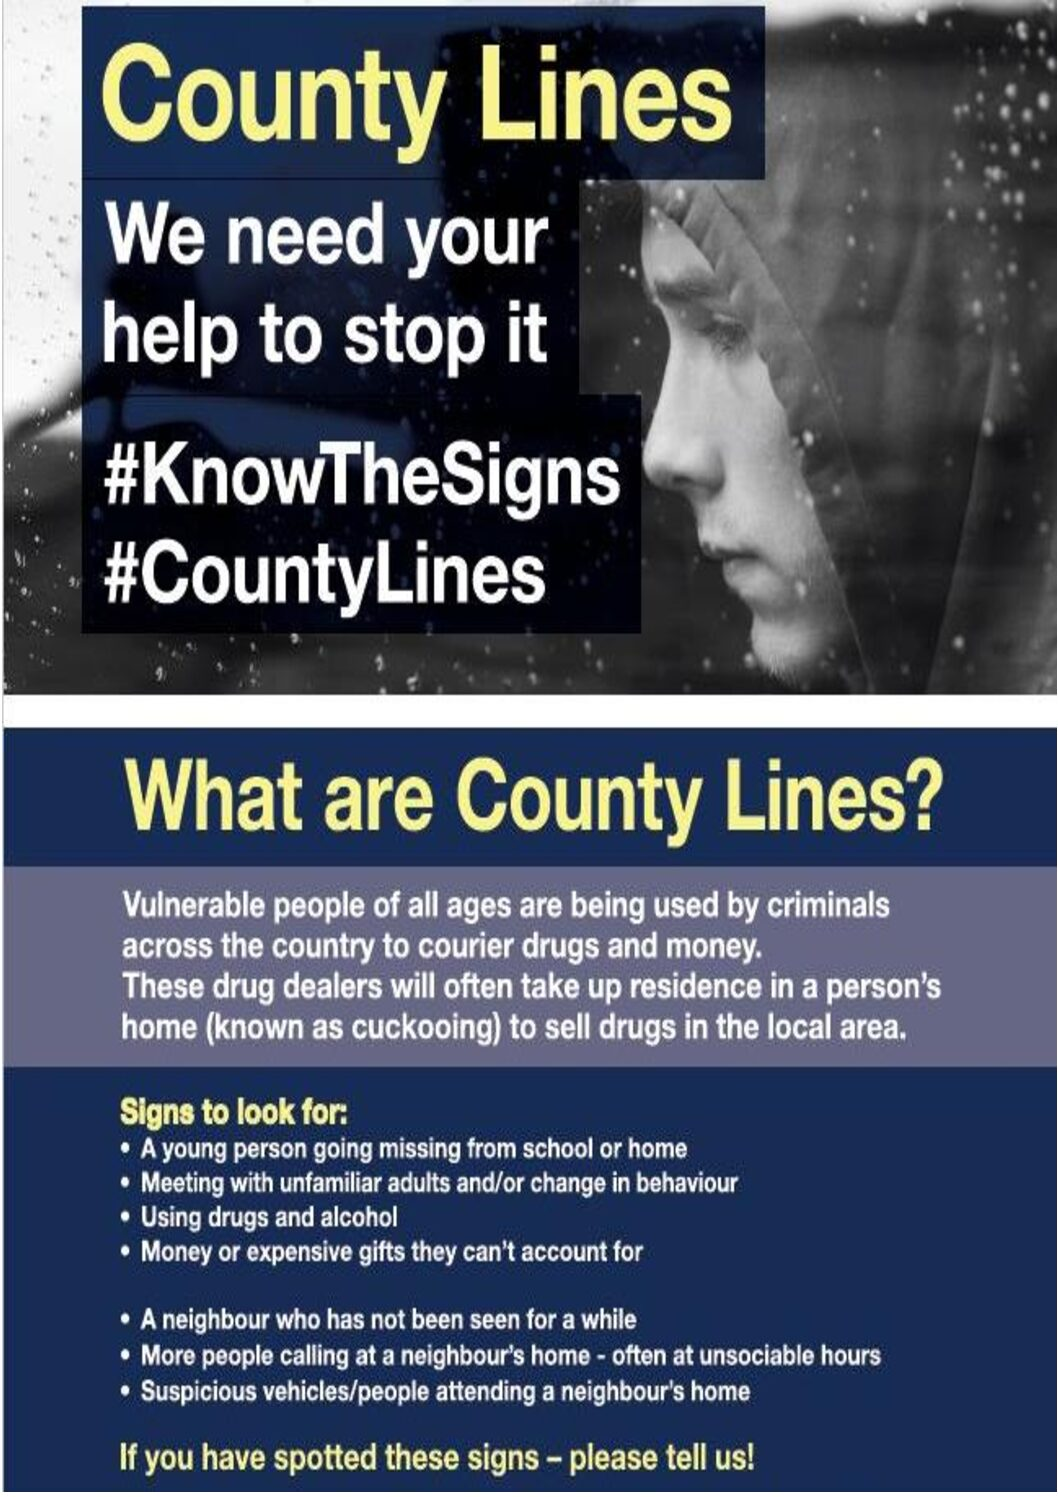 County Lines #KnowTheSigns #CountyLines